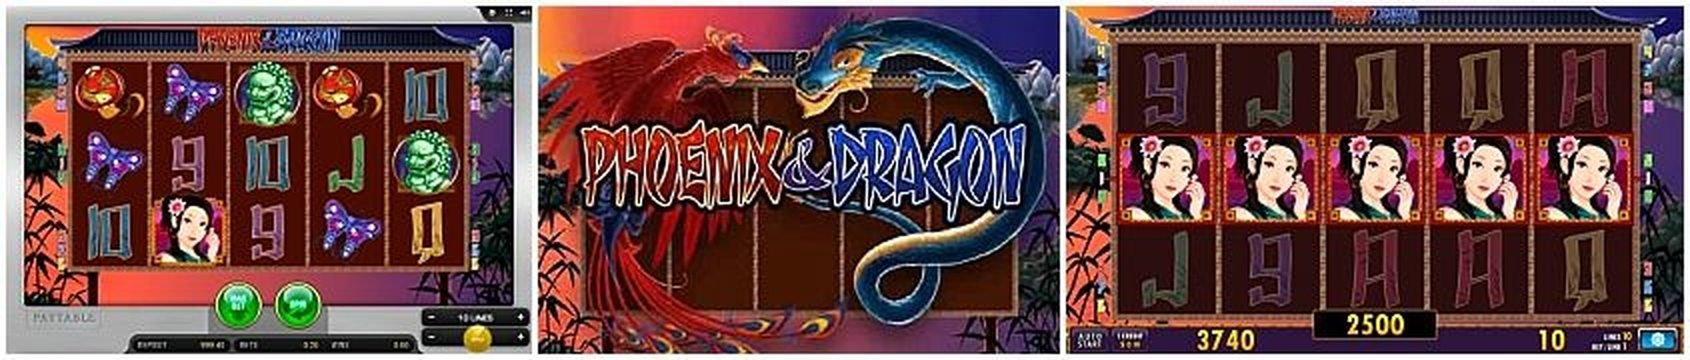 The Phoenix & Dragon HD Online Slot Demo Game by Merkur Gaming